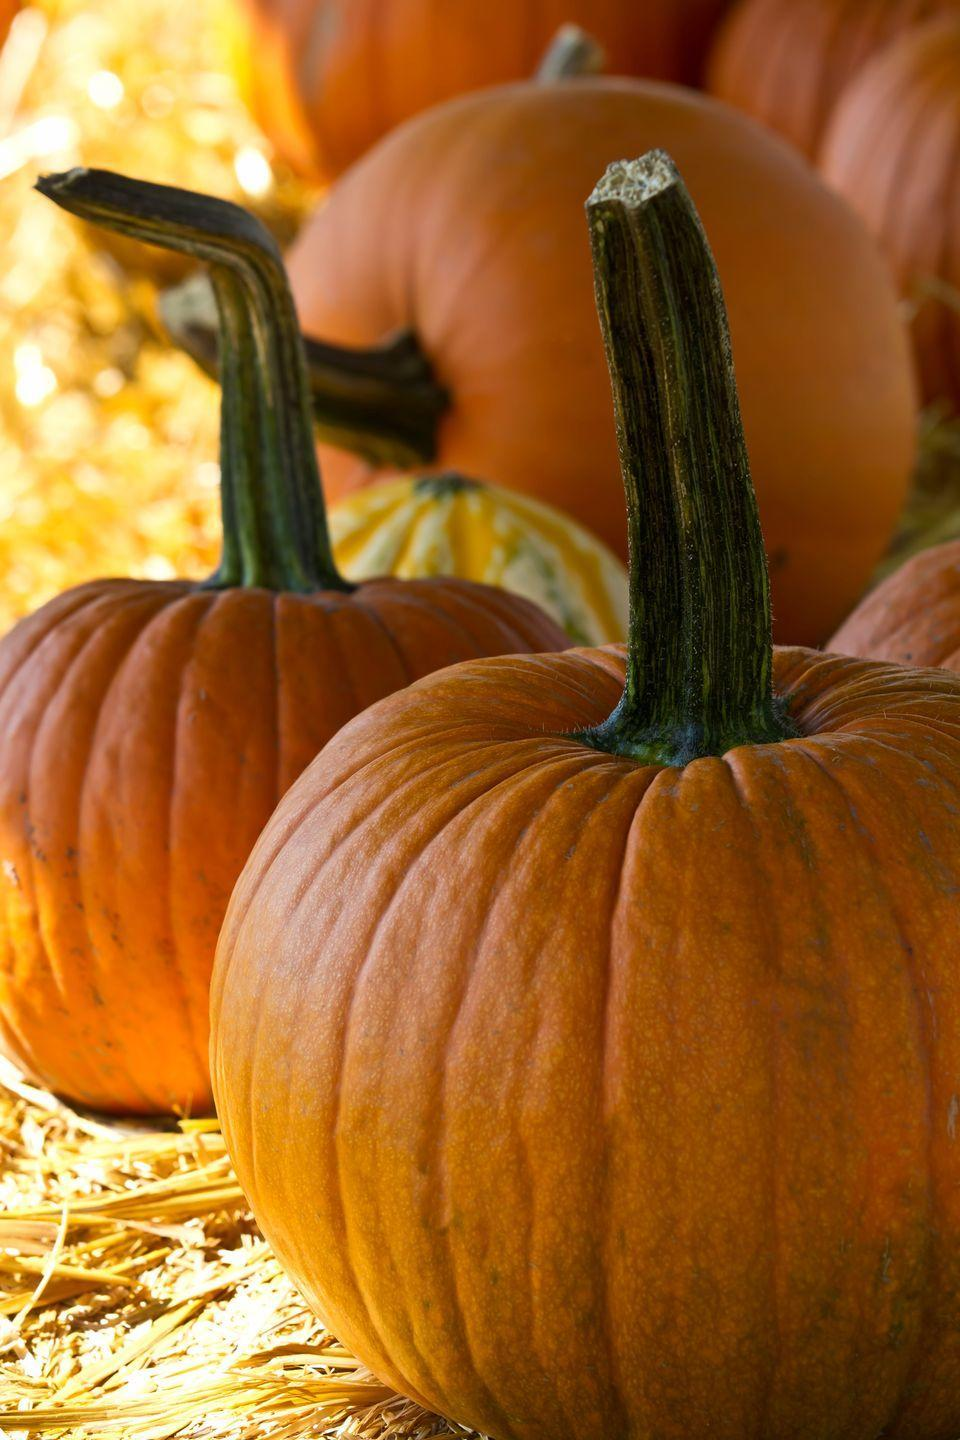 """<p>The town of Morton is the <a href=""""http://chicago.cbslocal.com/2014/09/19/morton-illinois-is-the-pumpkin-capital-of-the-world-or-is-it/"""" rel=""""nofollow noopener"""" target=""""_blank"""" data-ylk=""""slk:&quot;Pumpkin Capital of the World.&quot;"""" class=""""link rapid-noclick-resp"""">""""Pumpkin Capital of the World.""""</a> It's mainly due to the presence of the Libby's canning plant that cans more than 82% of canned pumpkin in the world.</p><p><span class=""""redactor-invisible-space""""><strong>RELATED: </strong></span><span class=""""redactor-invisible-space""""><a href=""""https://www.goodhousekeeping.com/holidays/halloween-ideas/g23480666/pumpkin-patch-near-me/"""" rel=""""nofollow noopener"""" target=""""_blank"""" data-ylk=""""slk:The Best Pumpkin Patch Near Me in Every State"""" class=""""link rapid-noclick-resp"""">The Best Pumpkin Patch Near Me in Every State</a></span></p>"""